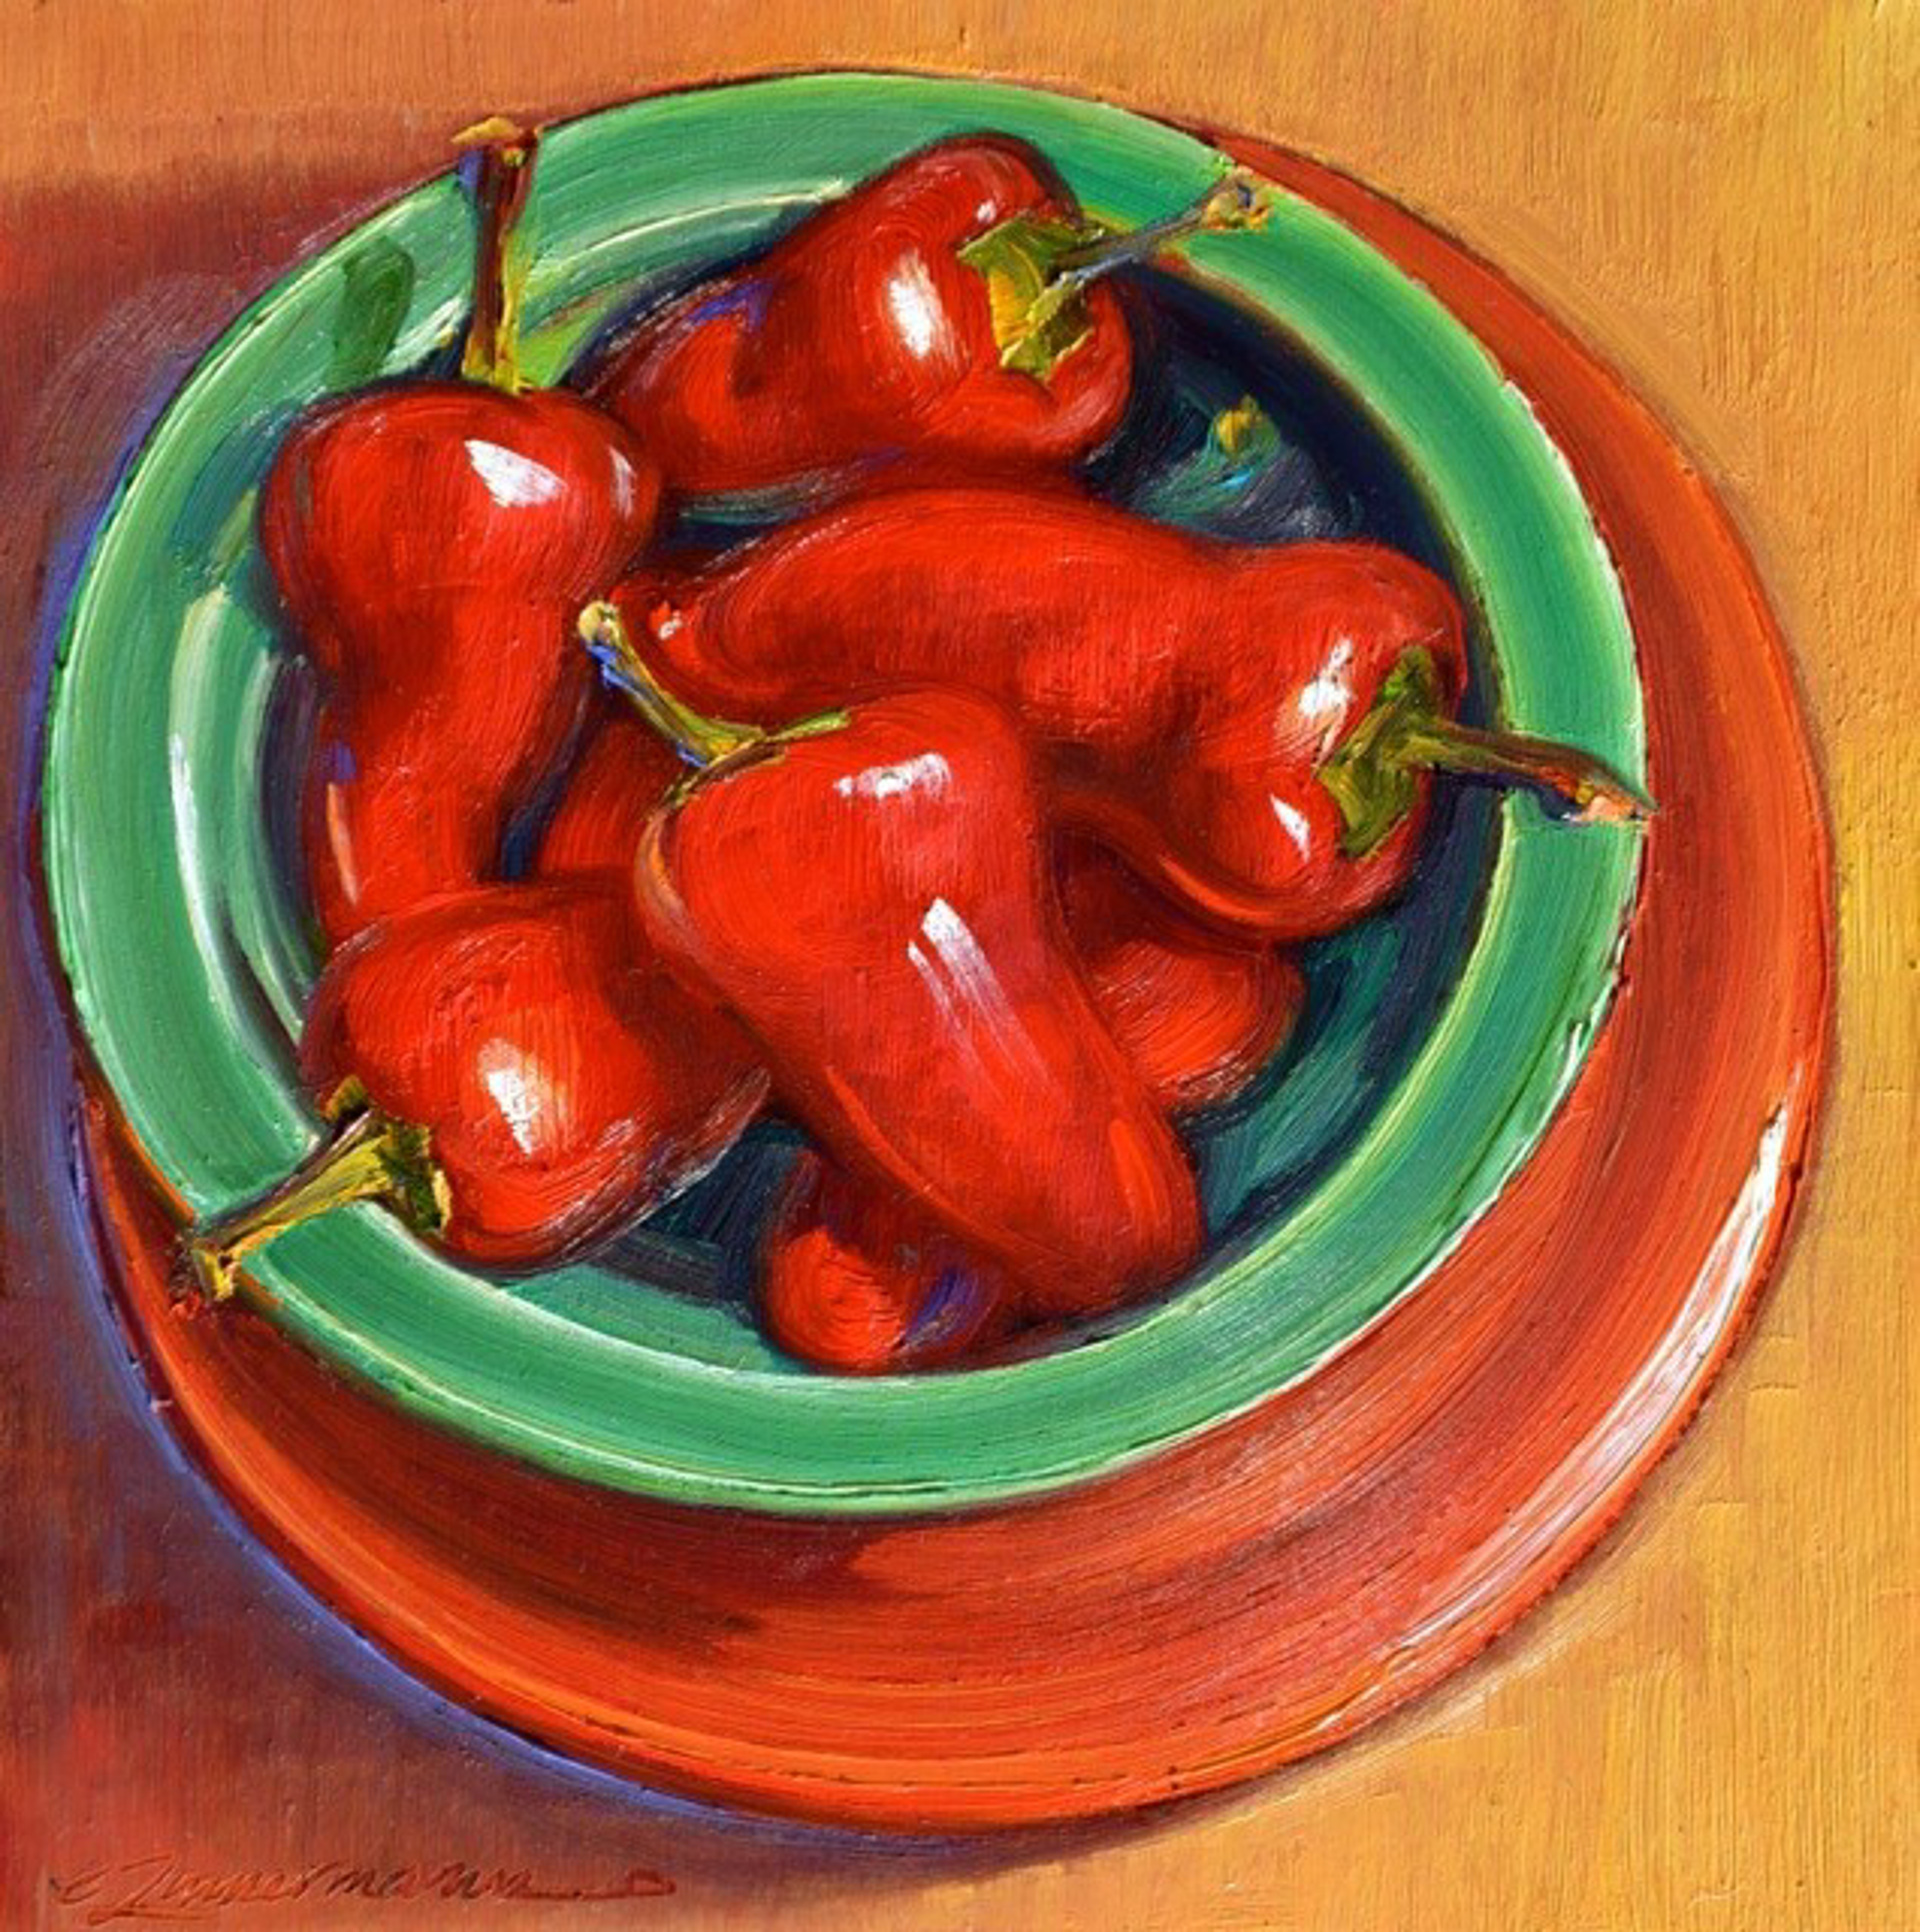 Red Hot Chili Peppers by Caroline Zimmermann